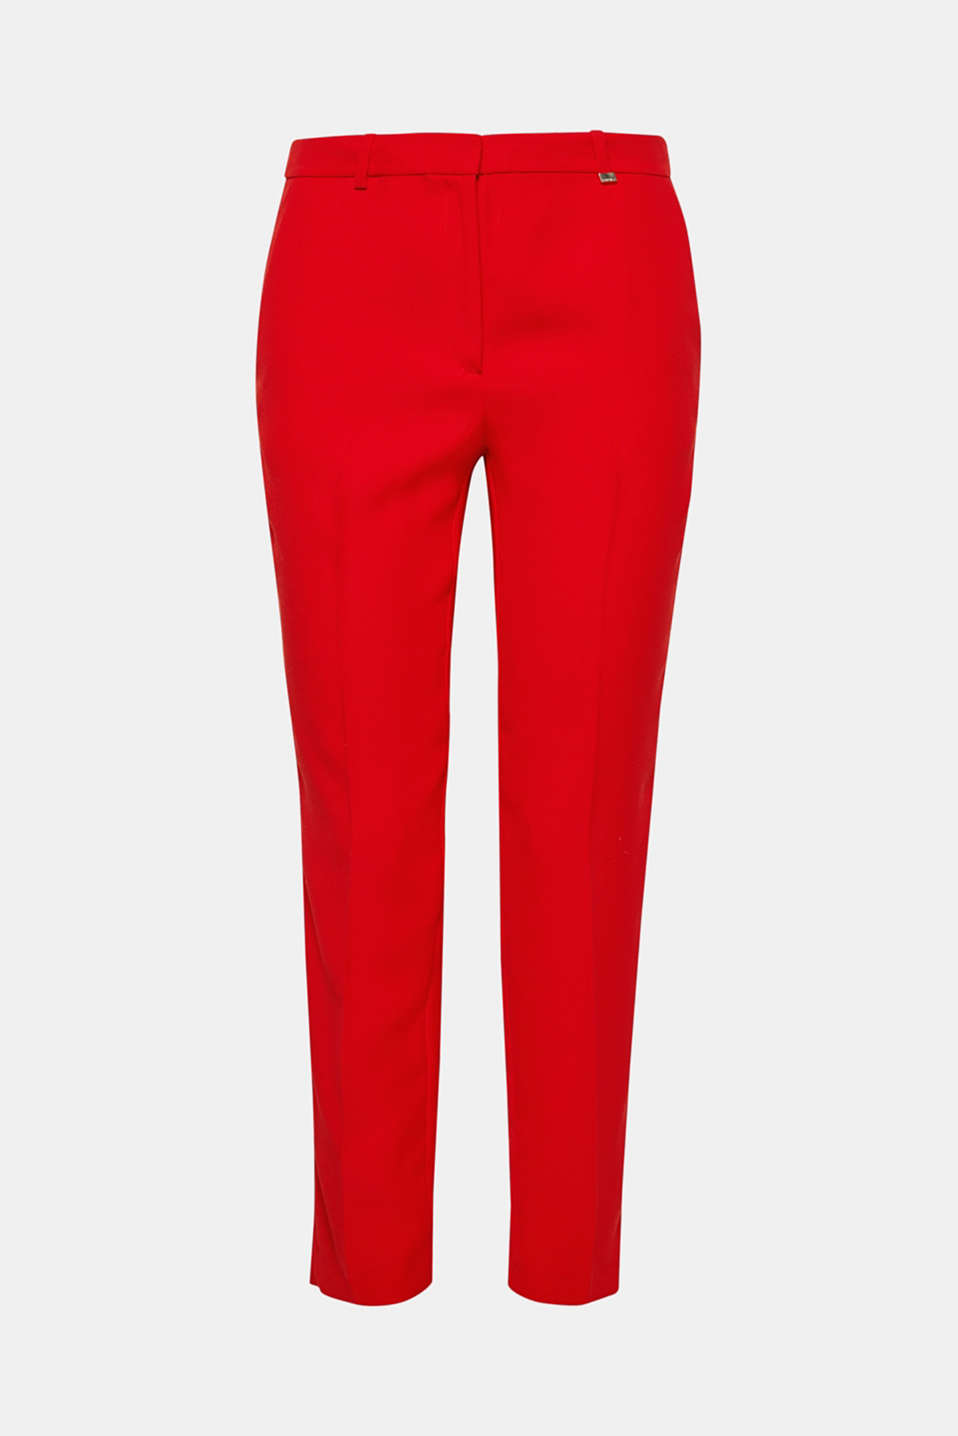 Hot red: these ankle-length trousers in softly draped crêpe with pressed pleats spice up any look.